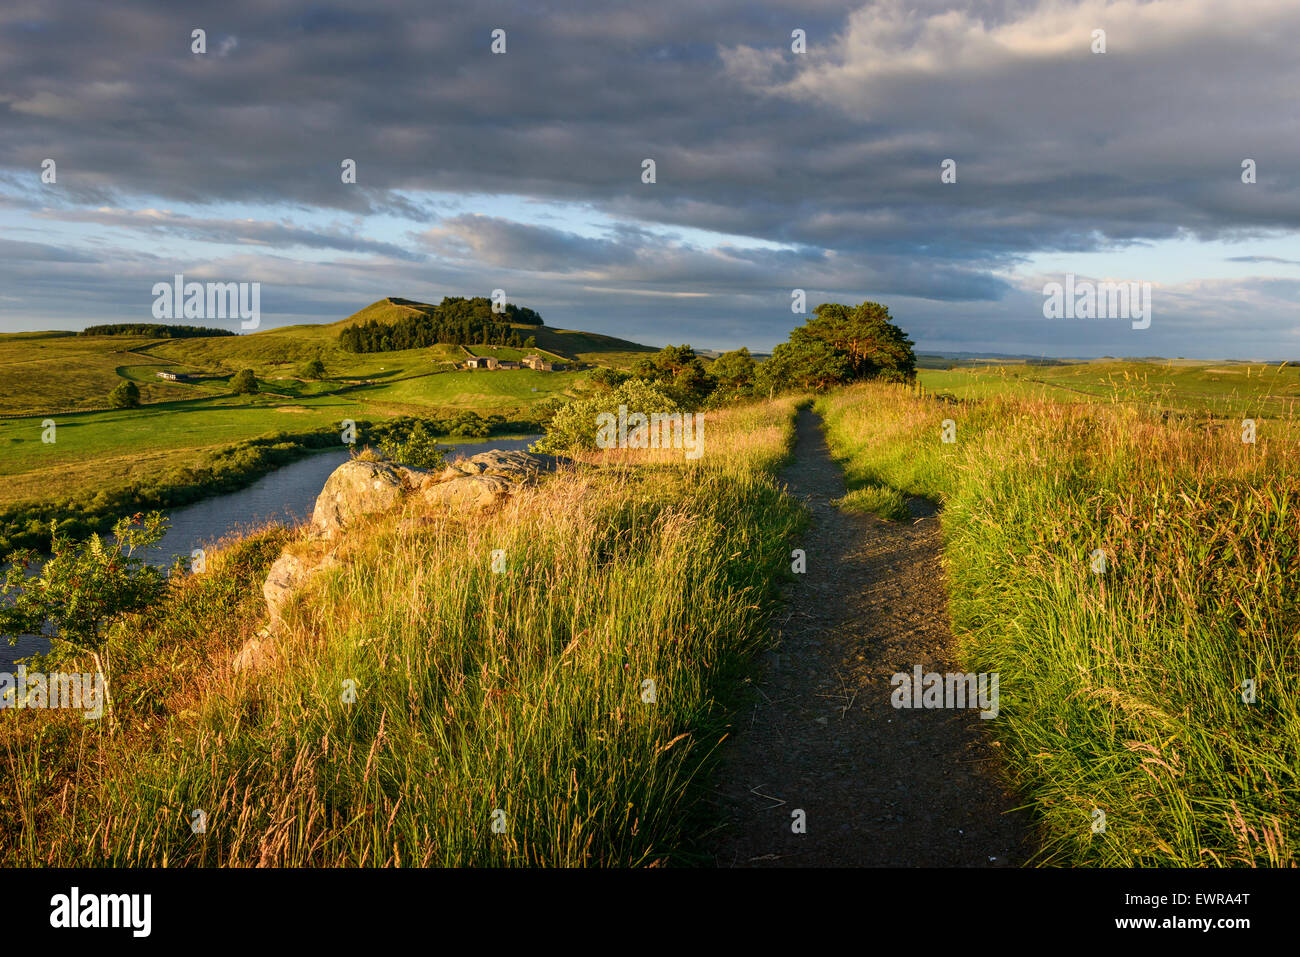 Hadrian's Wall Long Distance Trail - Stock Image